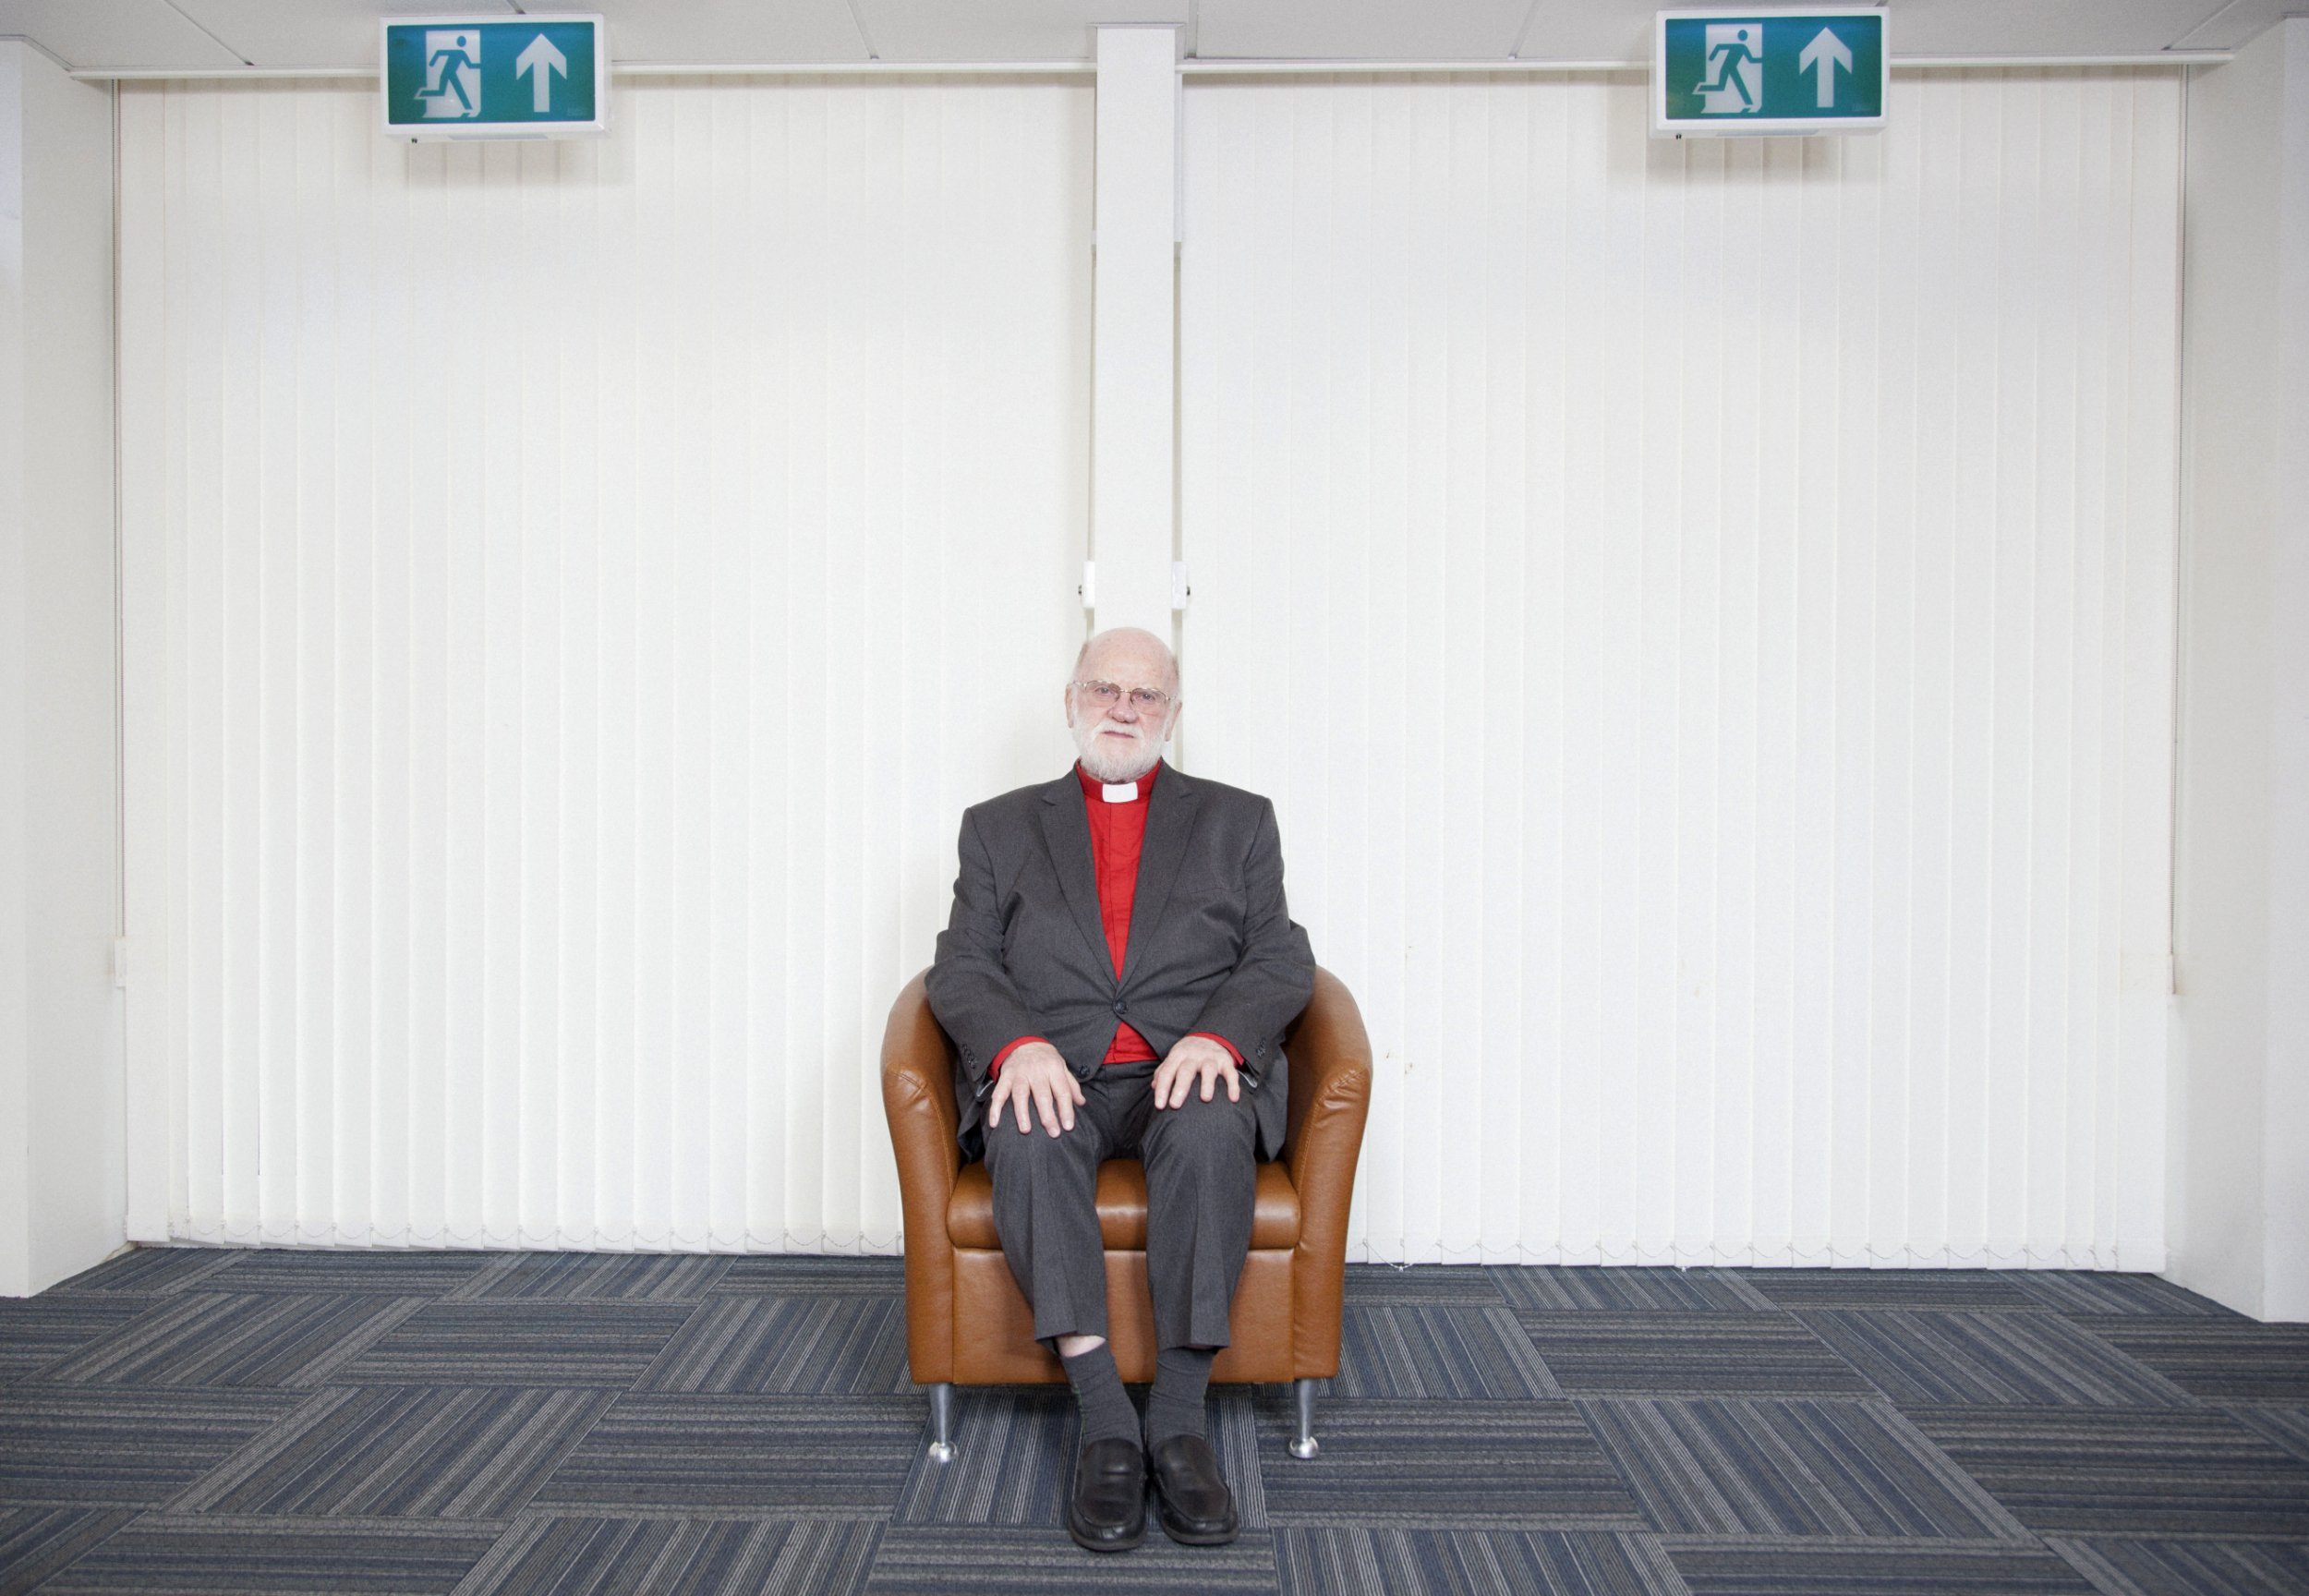 Assosciate chaplain of University of South Wales, Ray Vincent sits at a room in the meeting house at the Treforest Campus in South Wales, U.K.